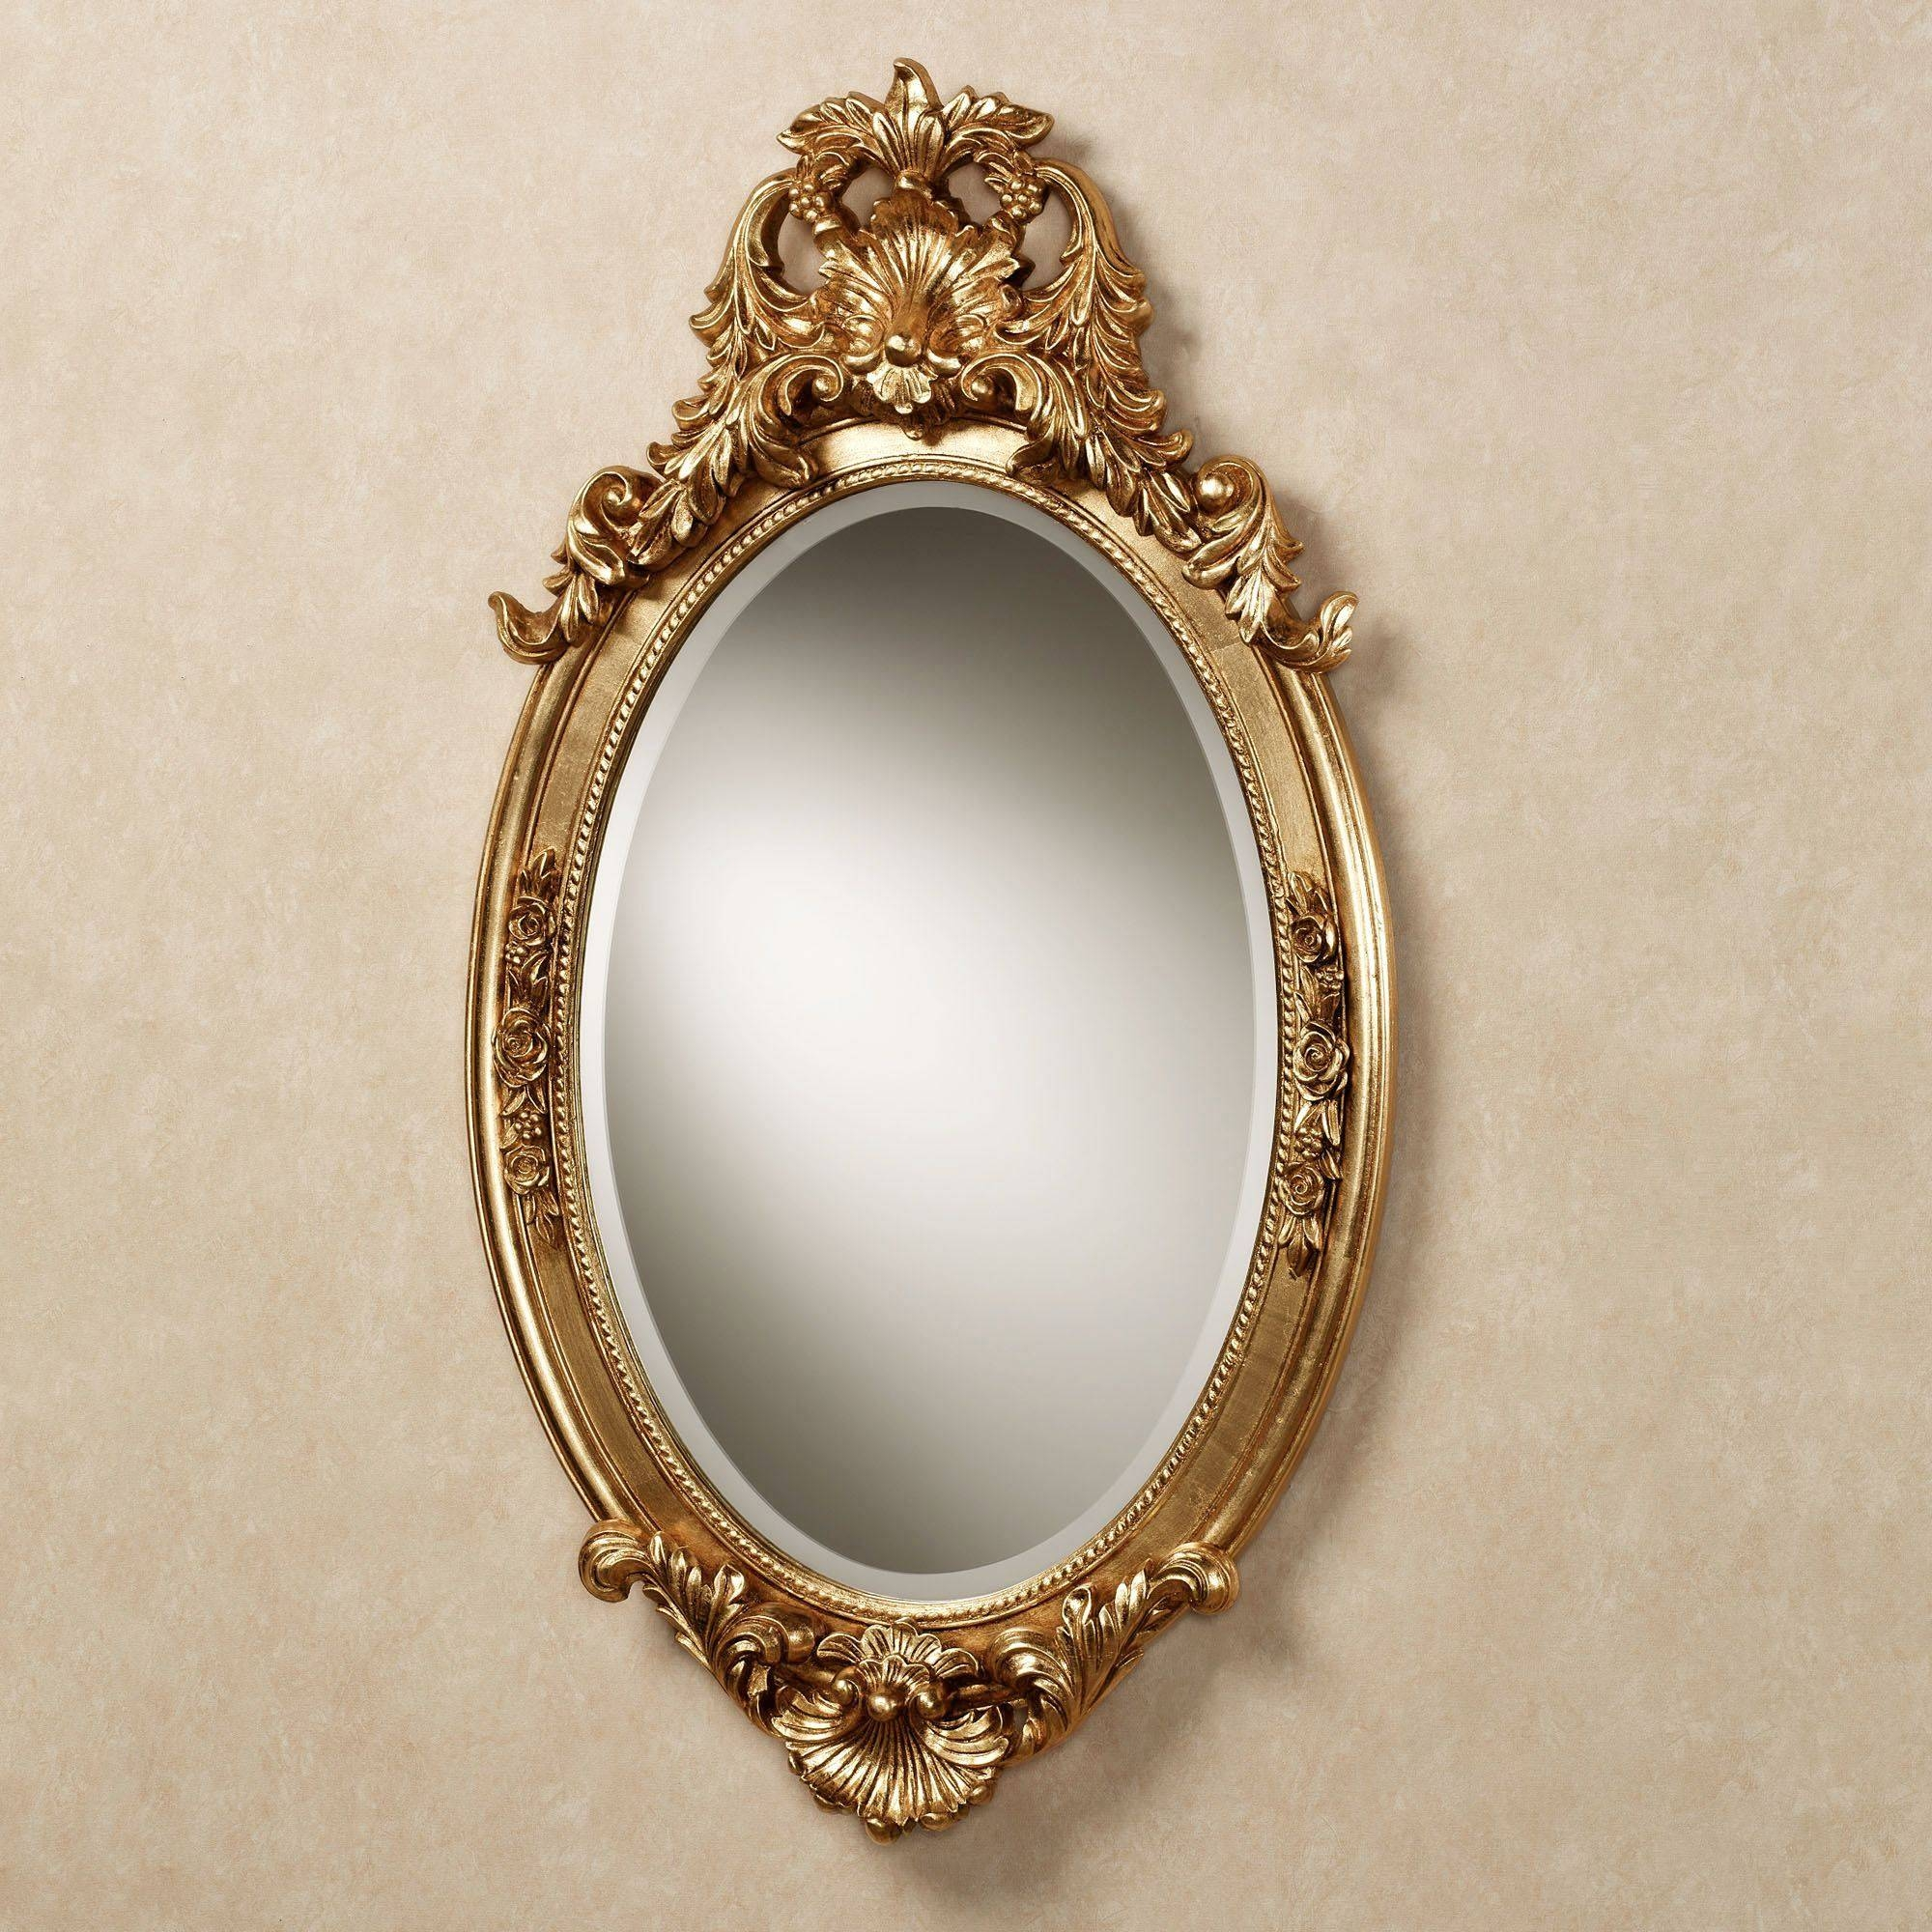 Hallandale Acanthus Leaf Oval Wall Mirror in Antique Wall Mirrors (Image 10 of 15)